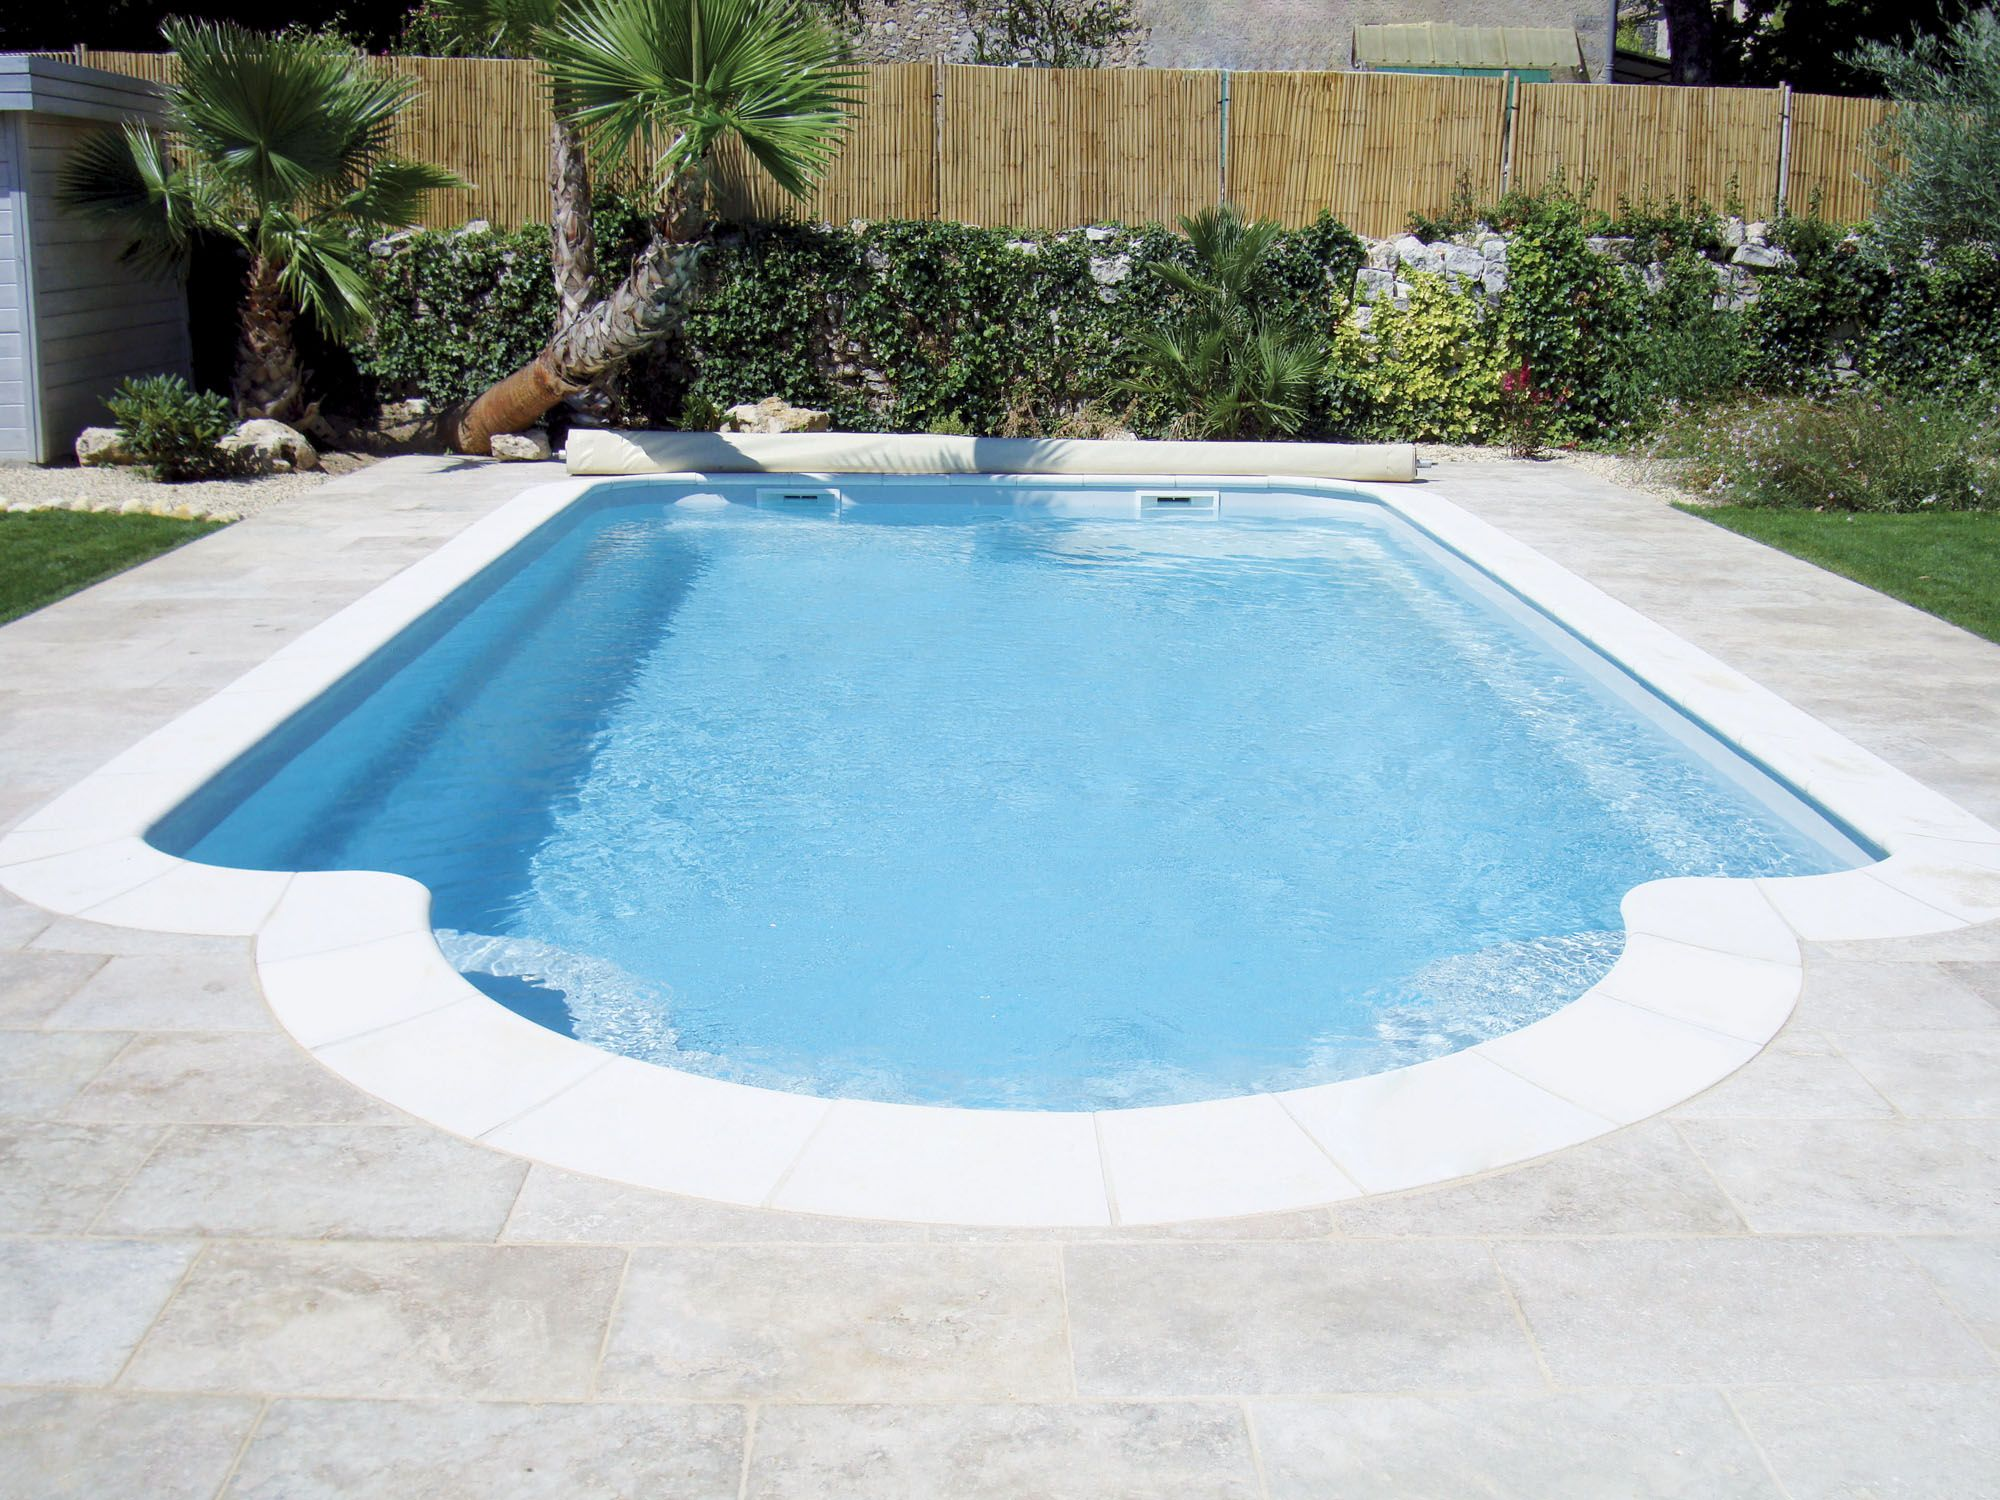 Piscine coque polyester arp ge fabrication fran aise for Piscine coque polyester